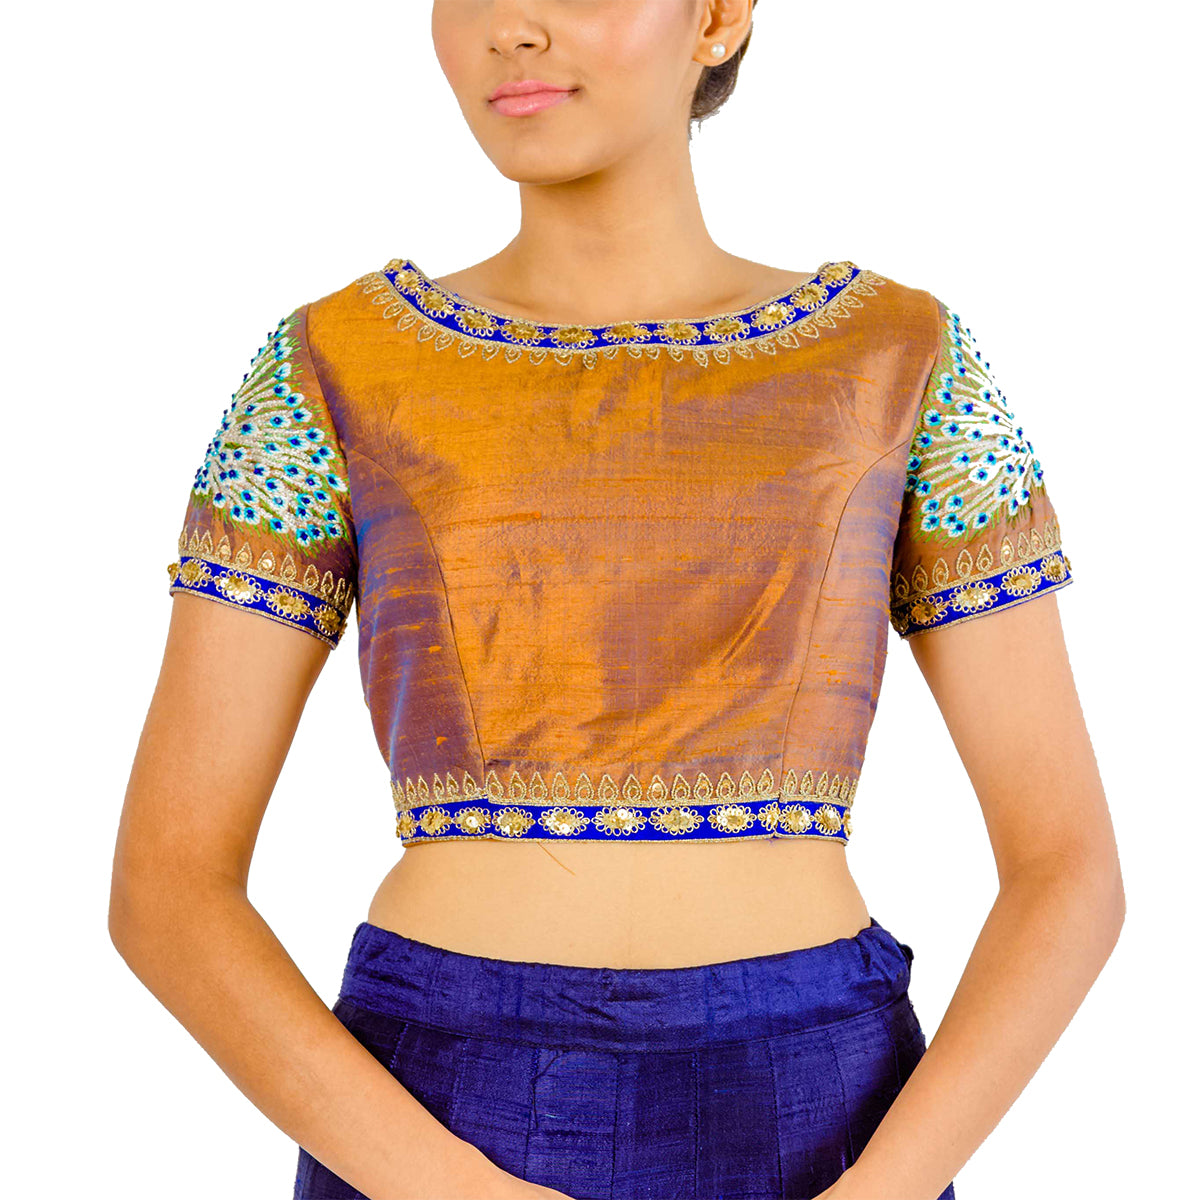 This piece brings back some serious pride and heritage with royal peacock motifs on the sleeves and back in a gold & blue two-toned silk material.